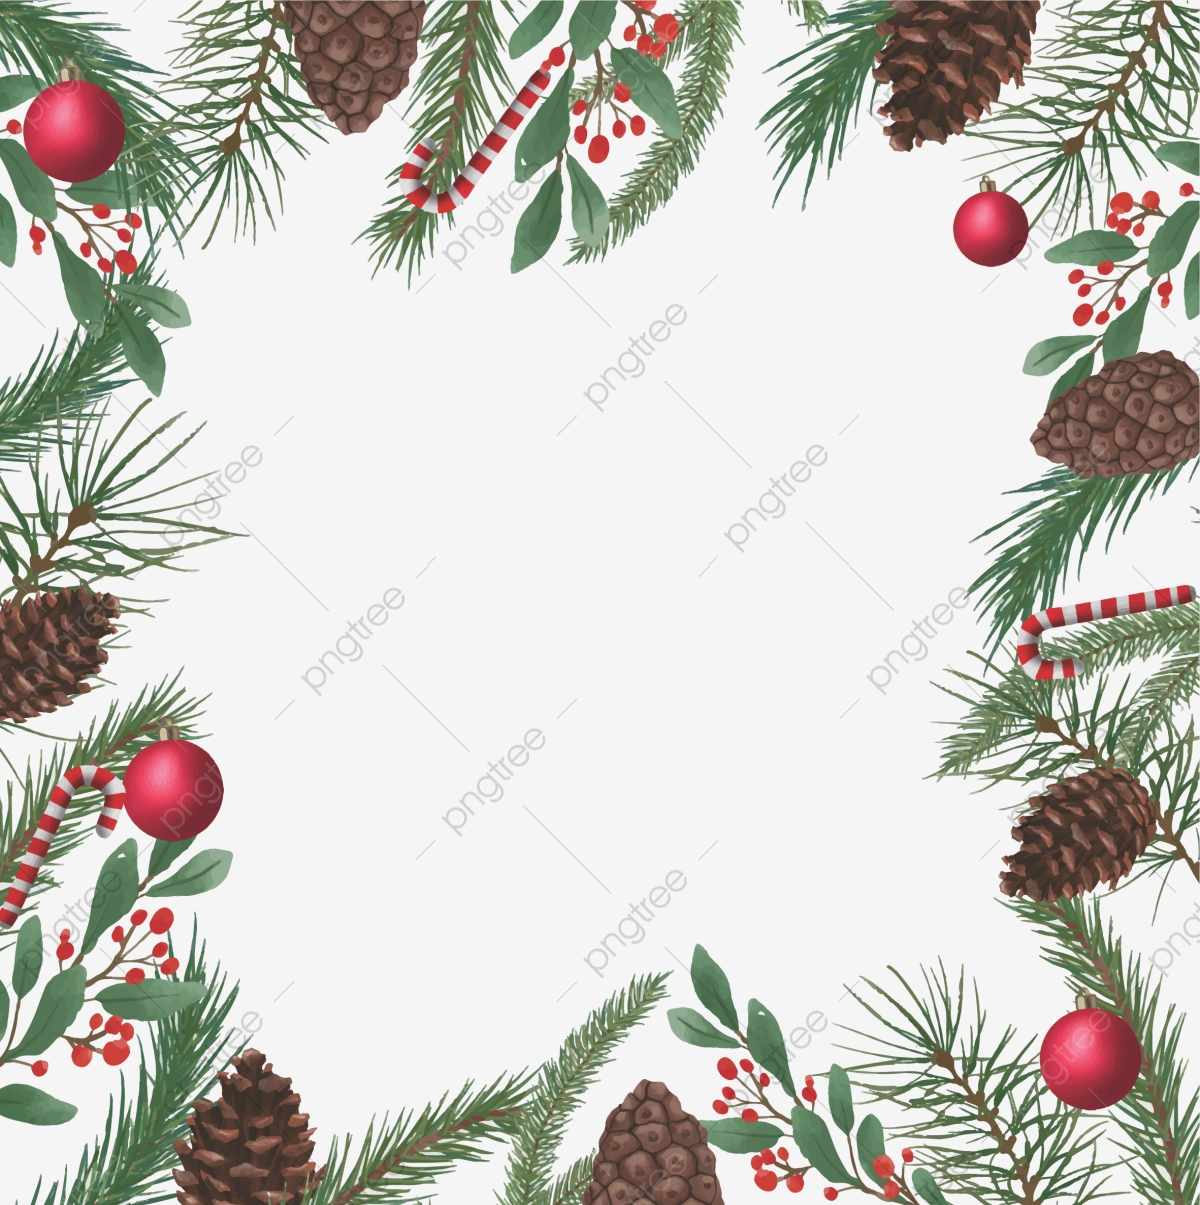 Christmas Frame Png Vector Psd And Clipart With Transparent Background For Free Download Pngtree